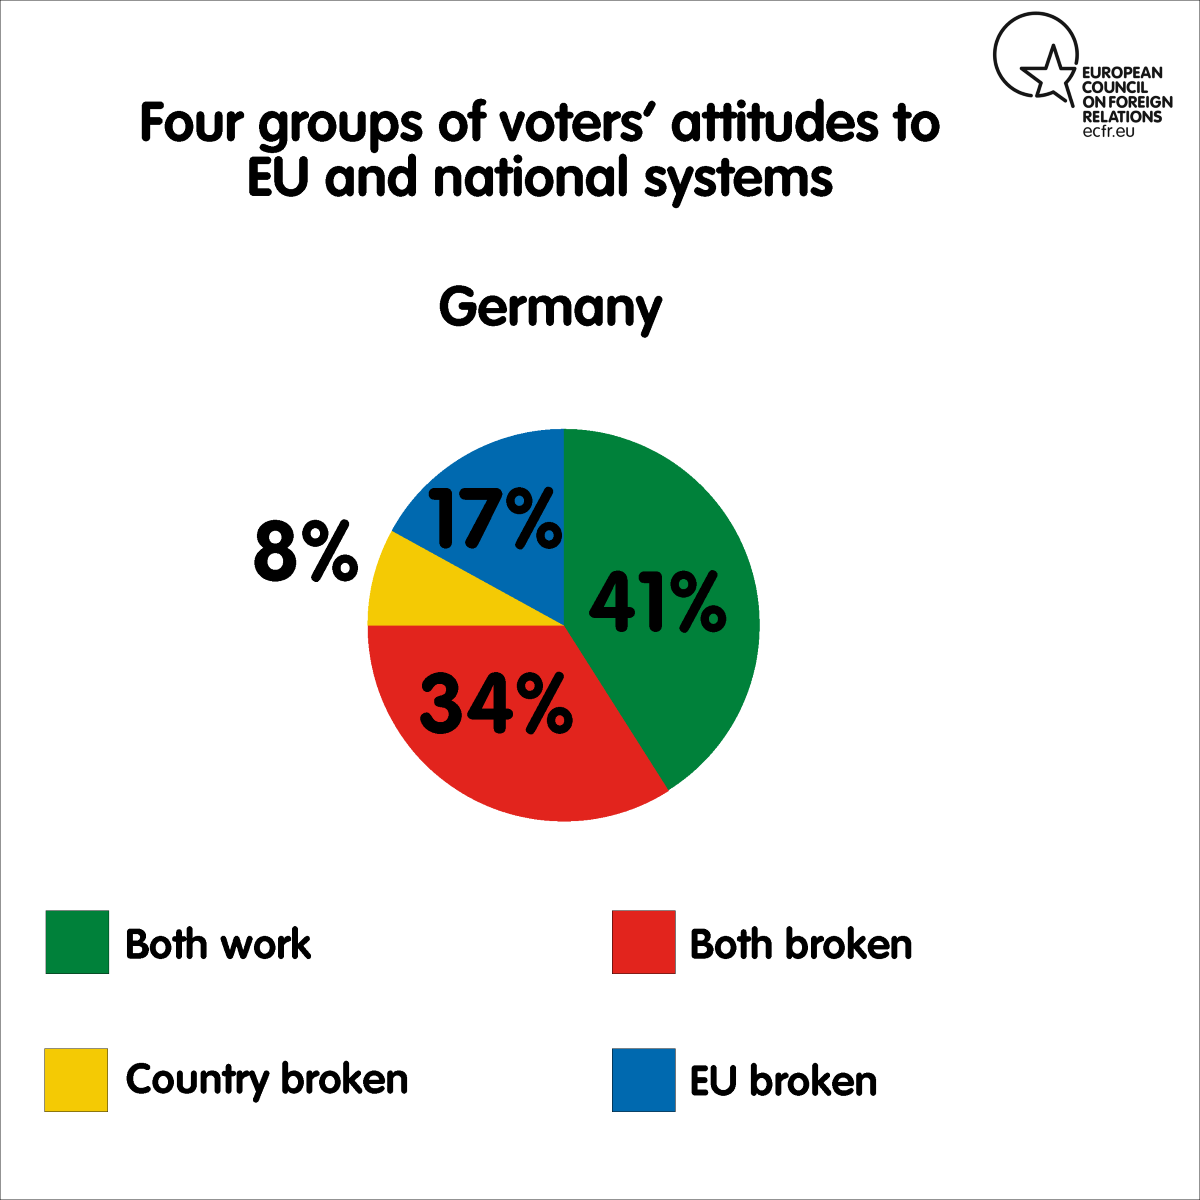 Four groups of voters' attitudes to EU and national systems in Germany